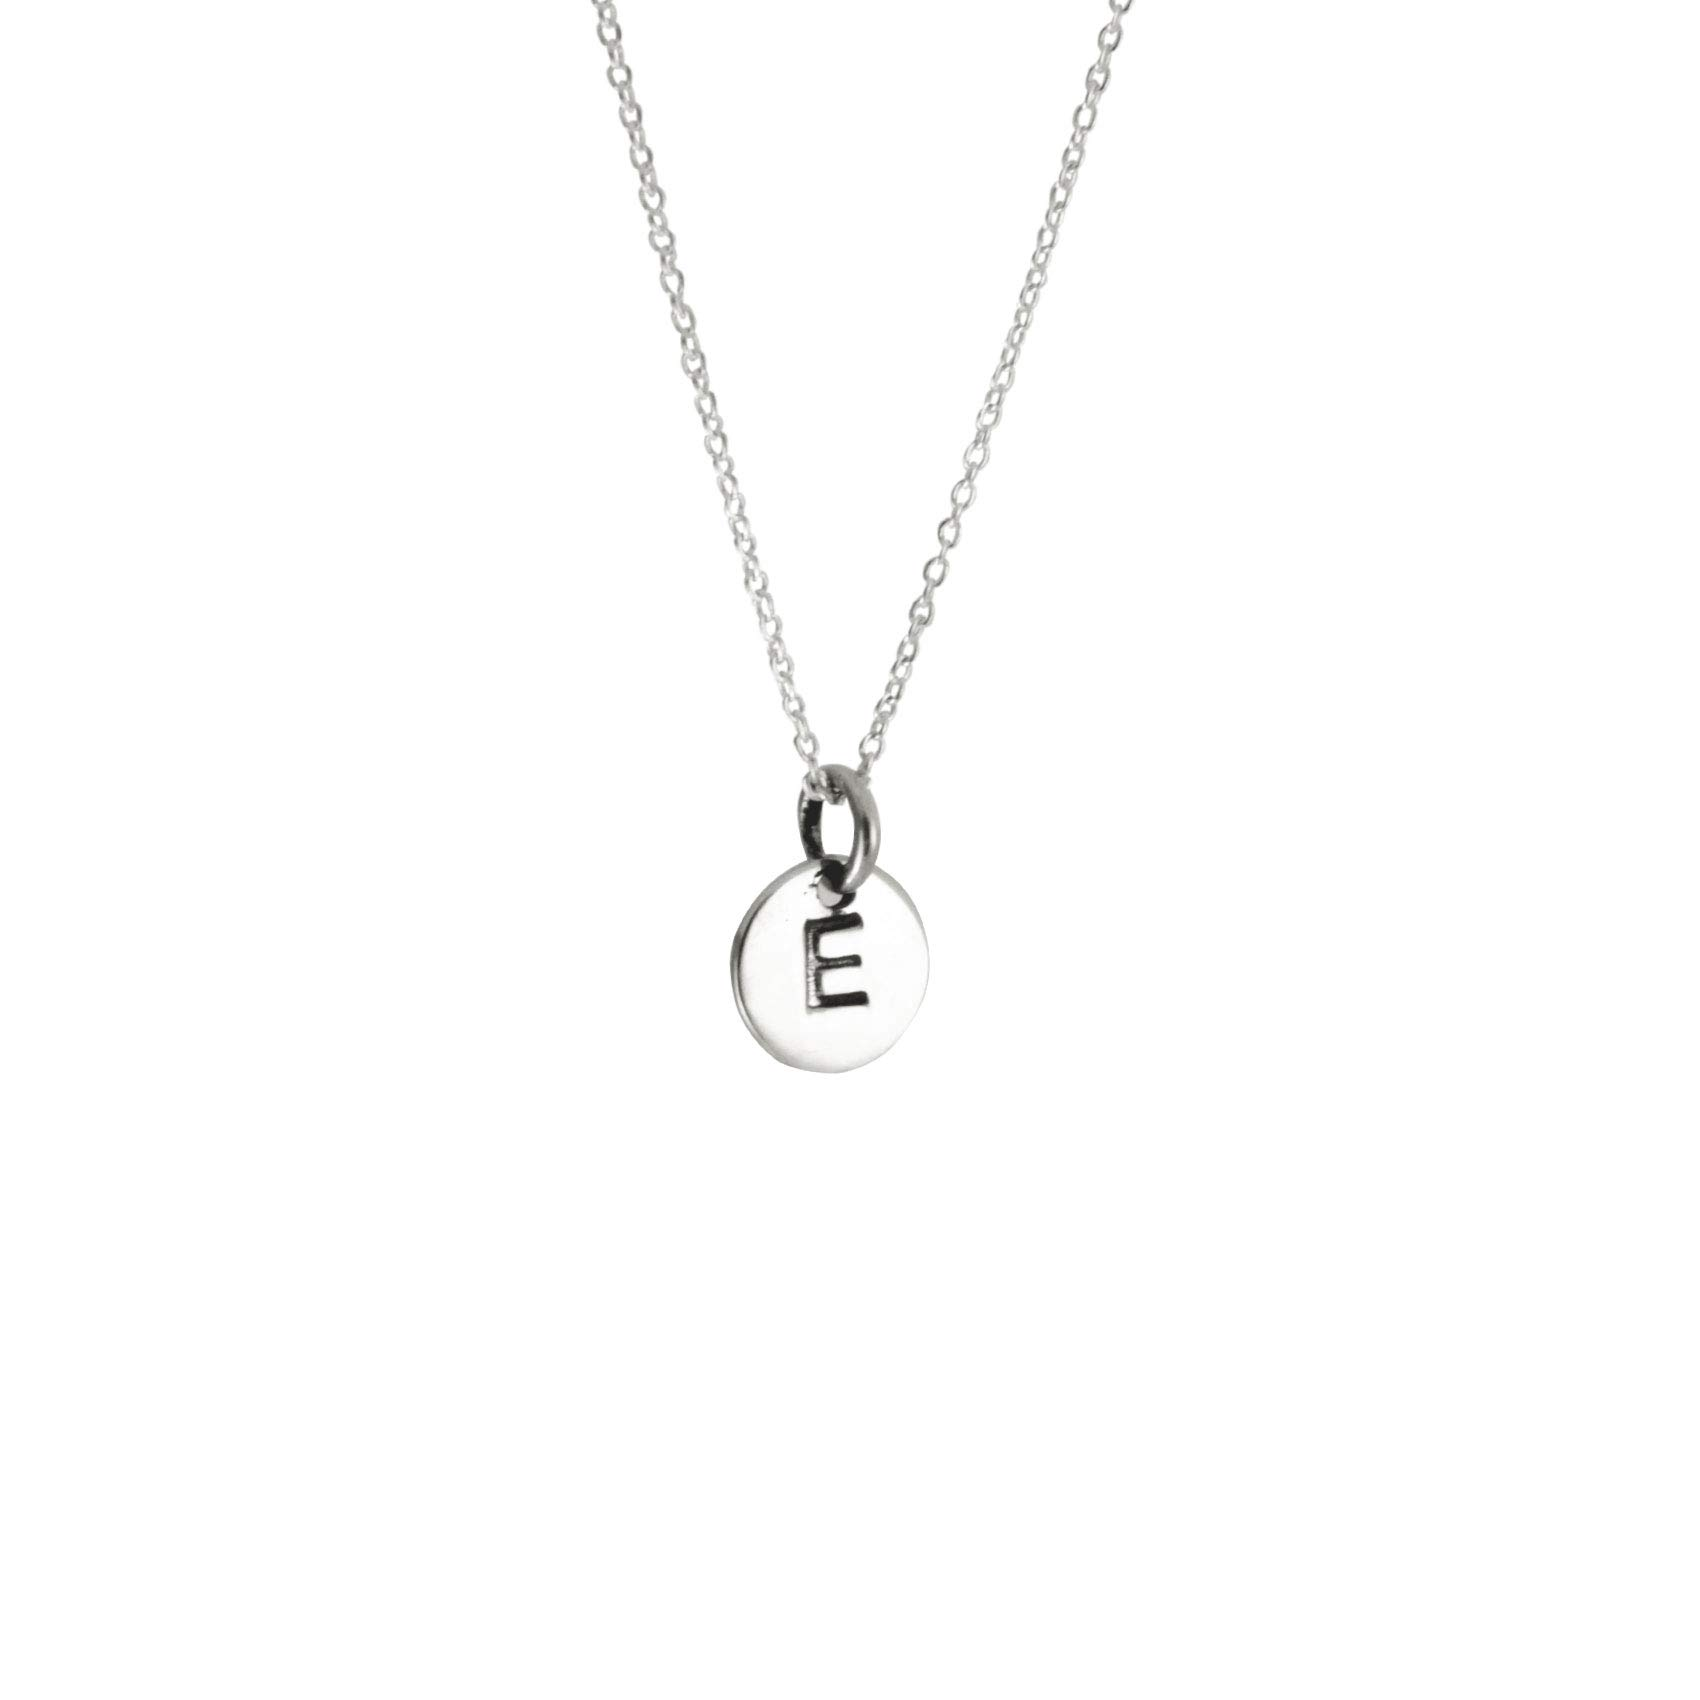 apop nyc 925 Sterling Silver Alphabet Initial Mini Letter Disc Pendant Necklace 18 inch